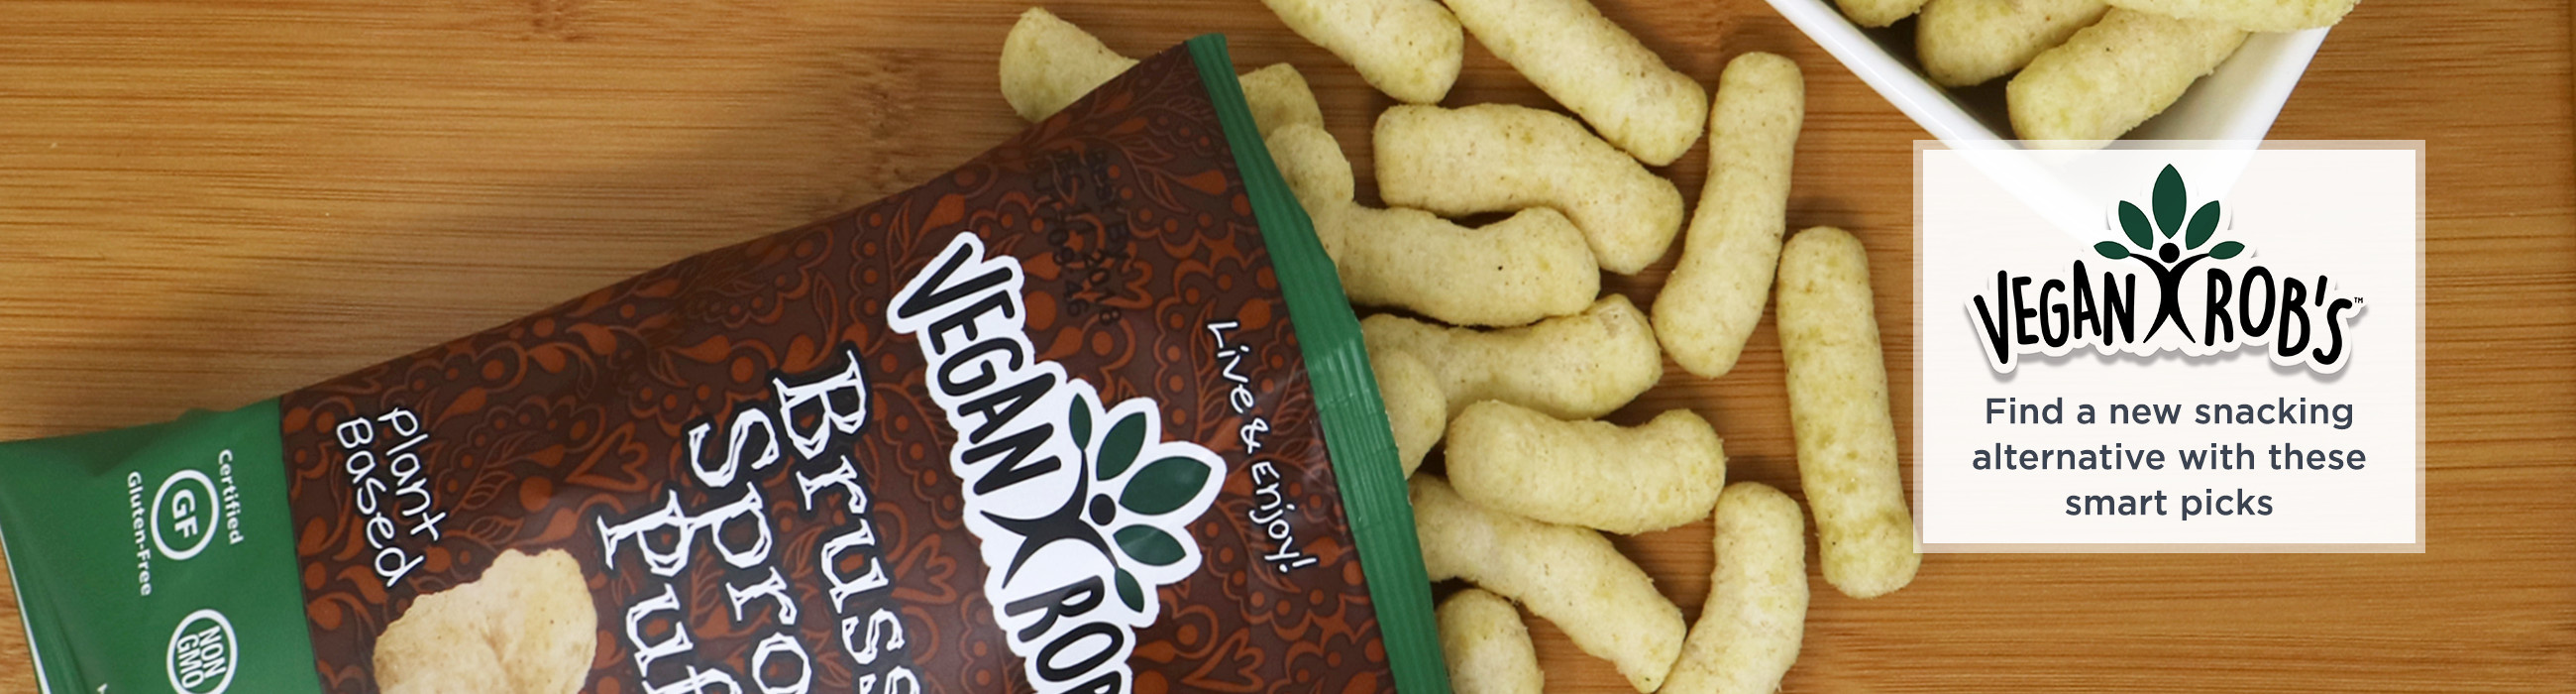 Vegan Rob's. Find a new snacking alternative with these smart picks